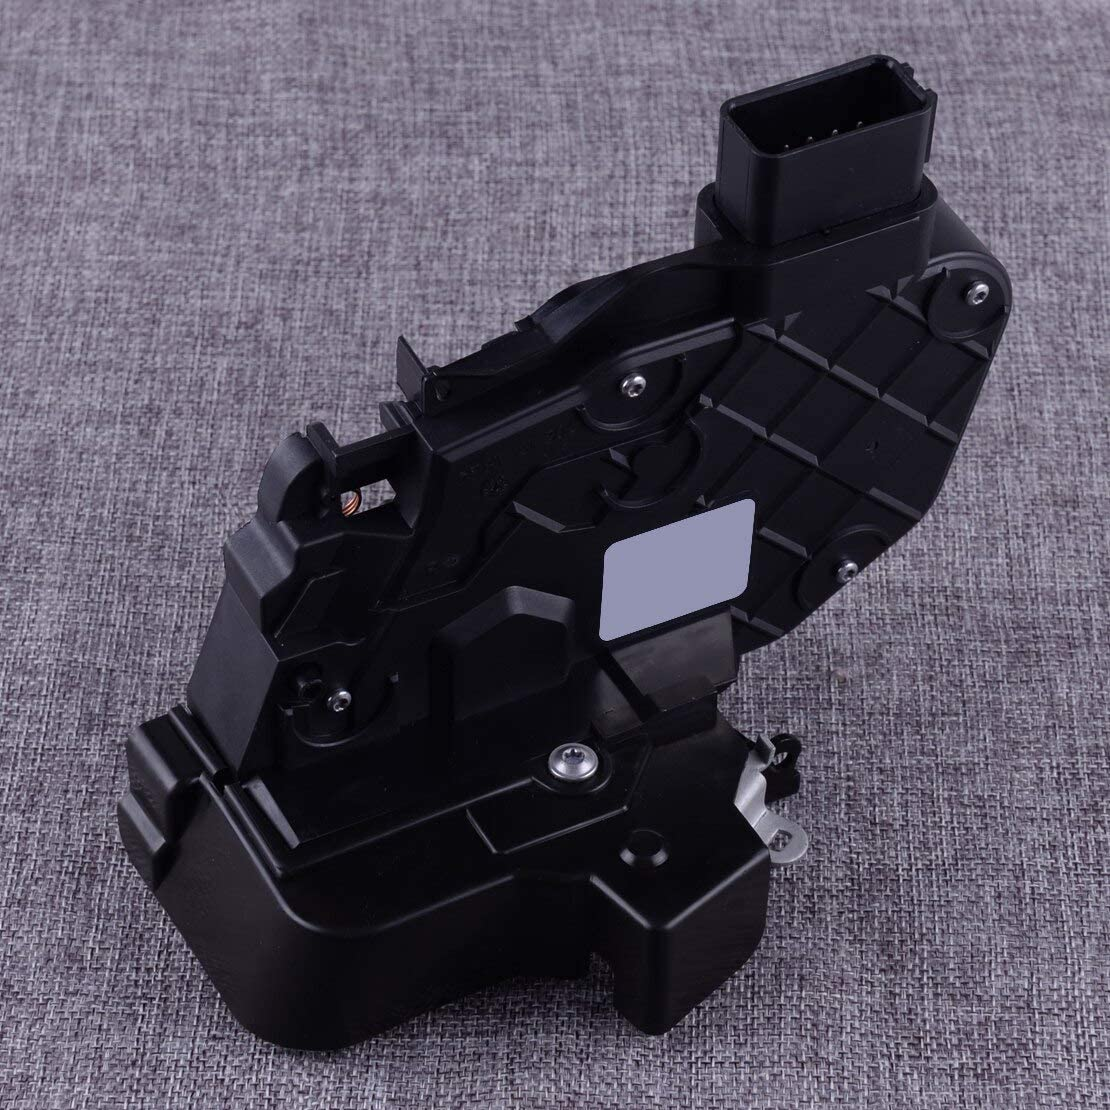 Front Right Door Latch Lock Actuator Black Lr011275 Fit For Range For Rover Discovery 3 4 Freefor Lander 2